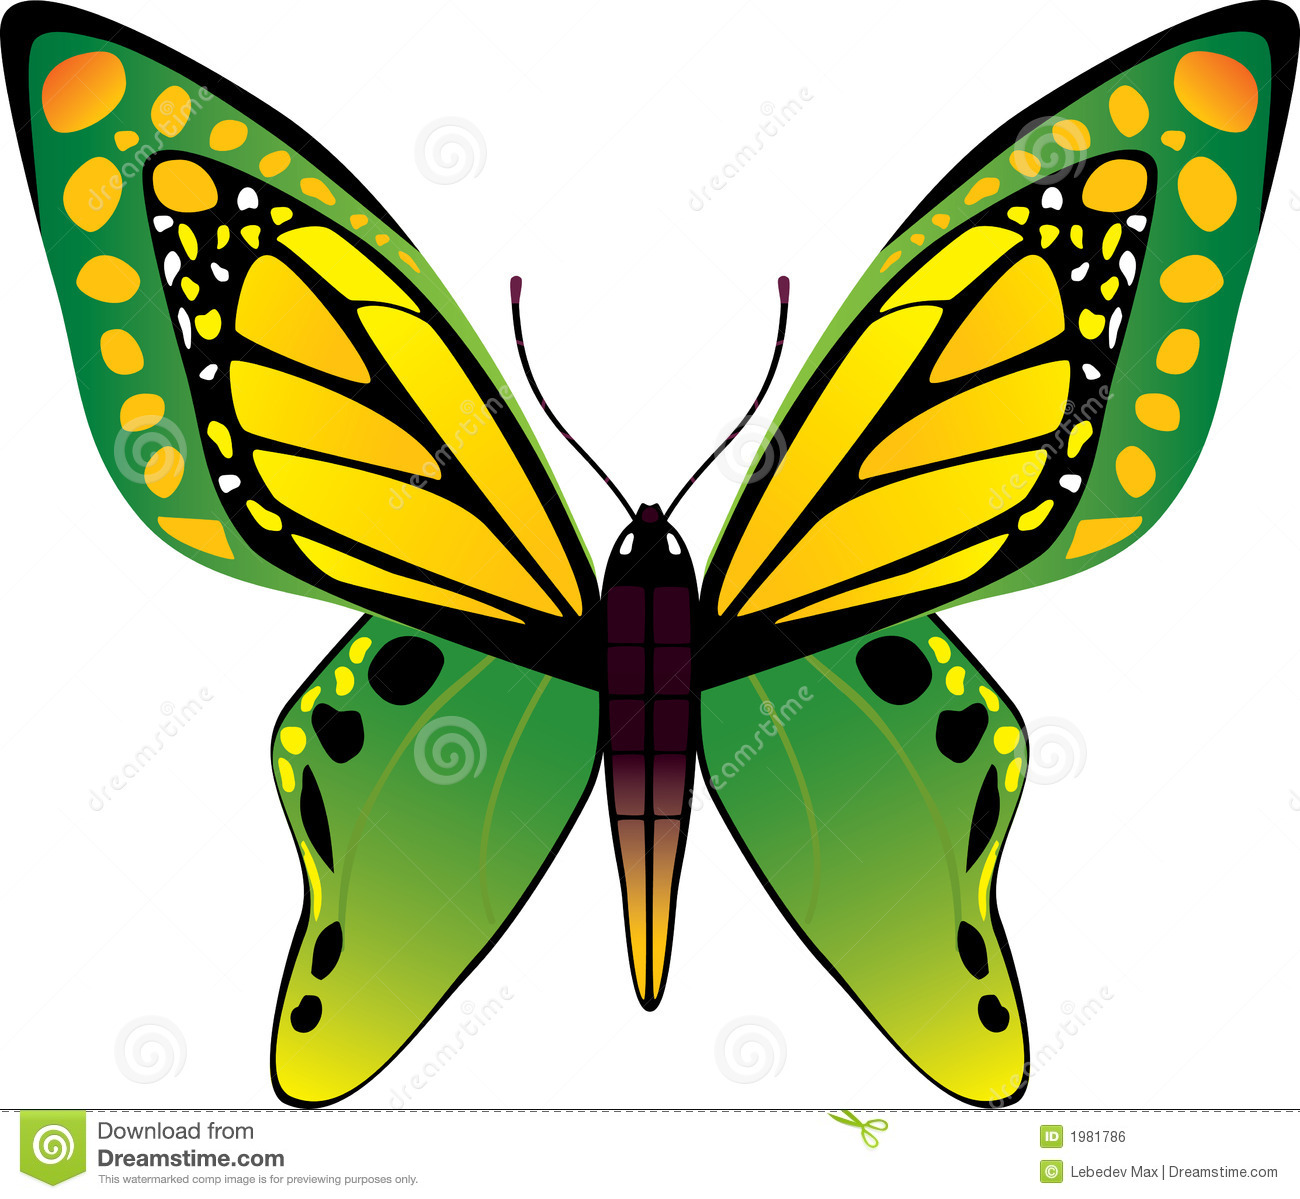 Vector Butterfly Royalty Free Stock Image - Image: 1981786